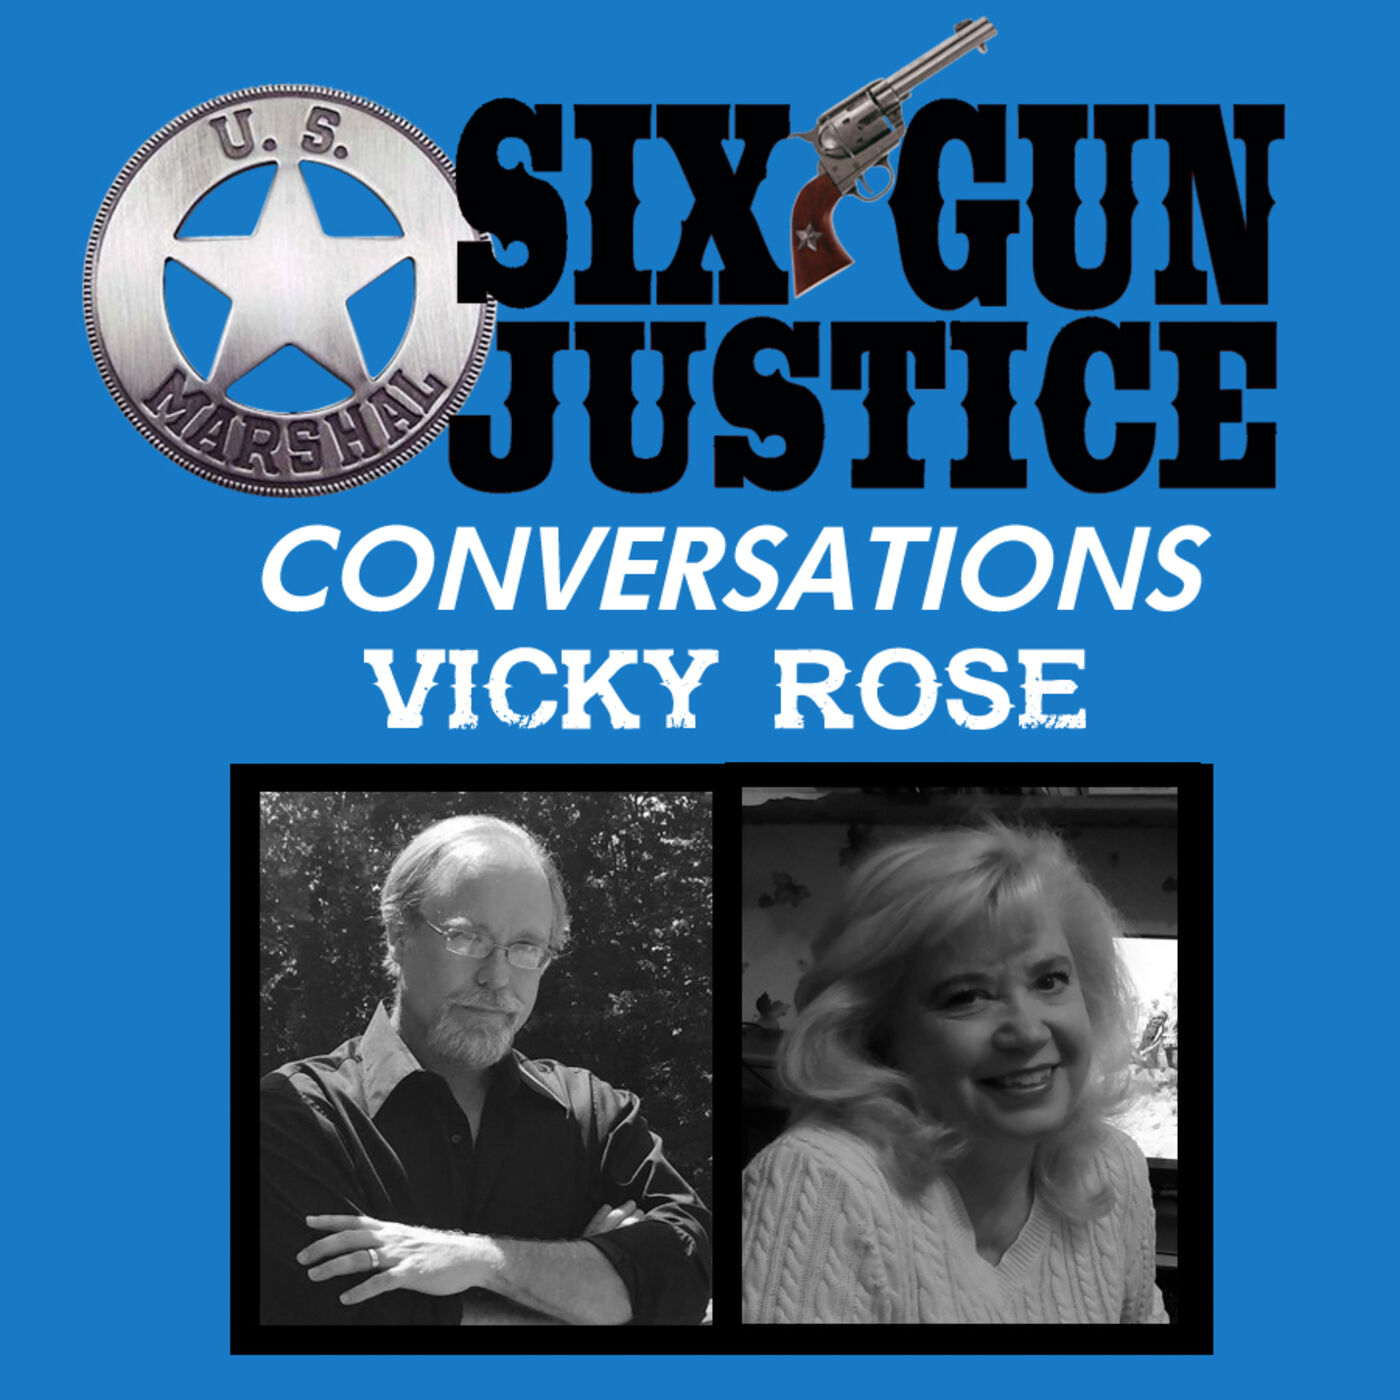 SIX-GUN JUSTICE CONVERSATIONS—VICKY ROSE